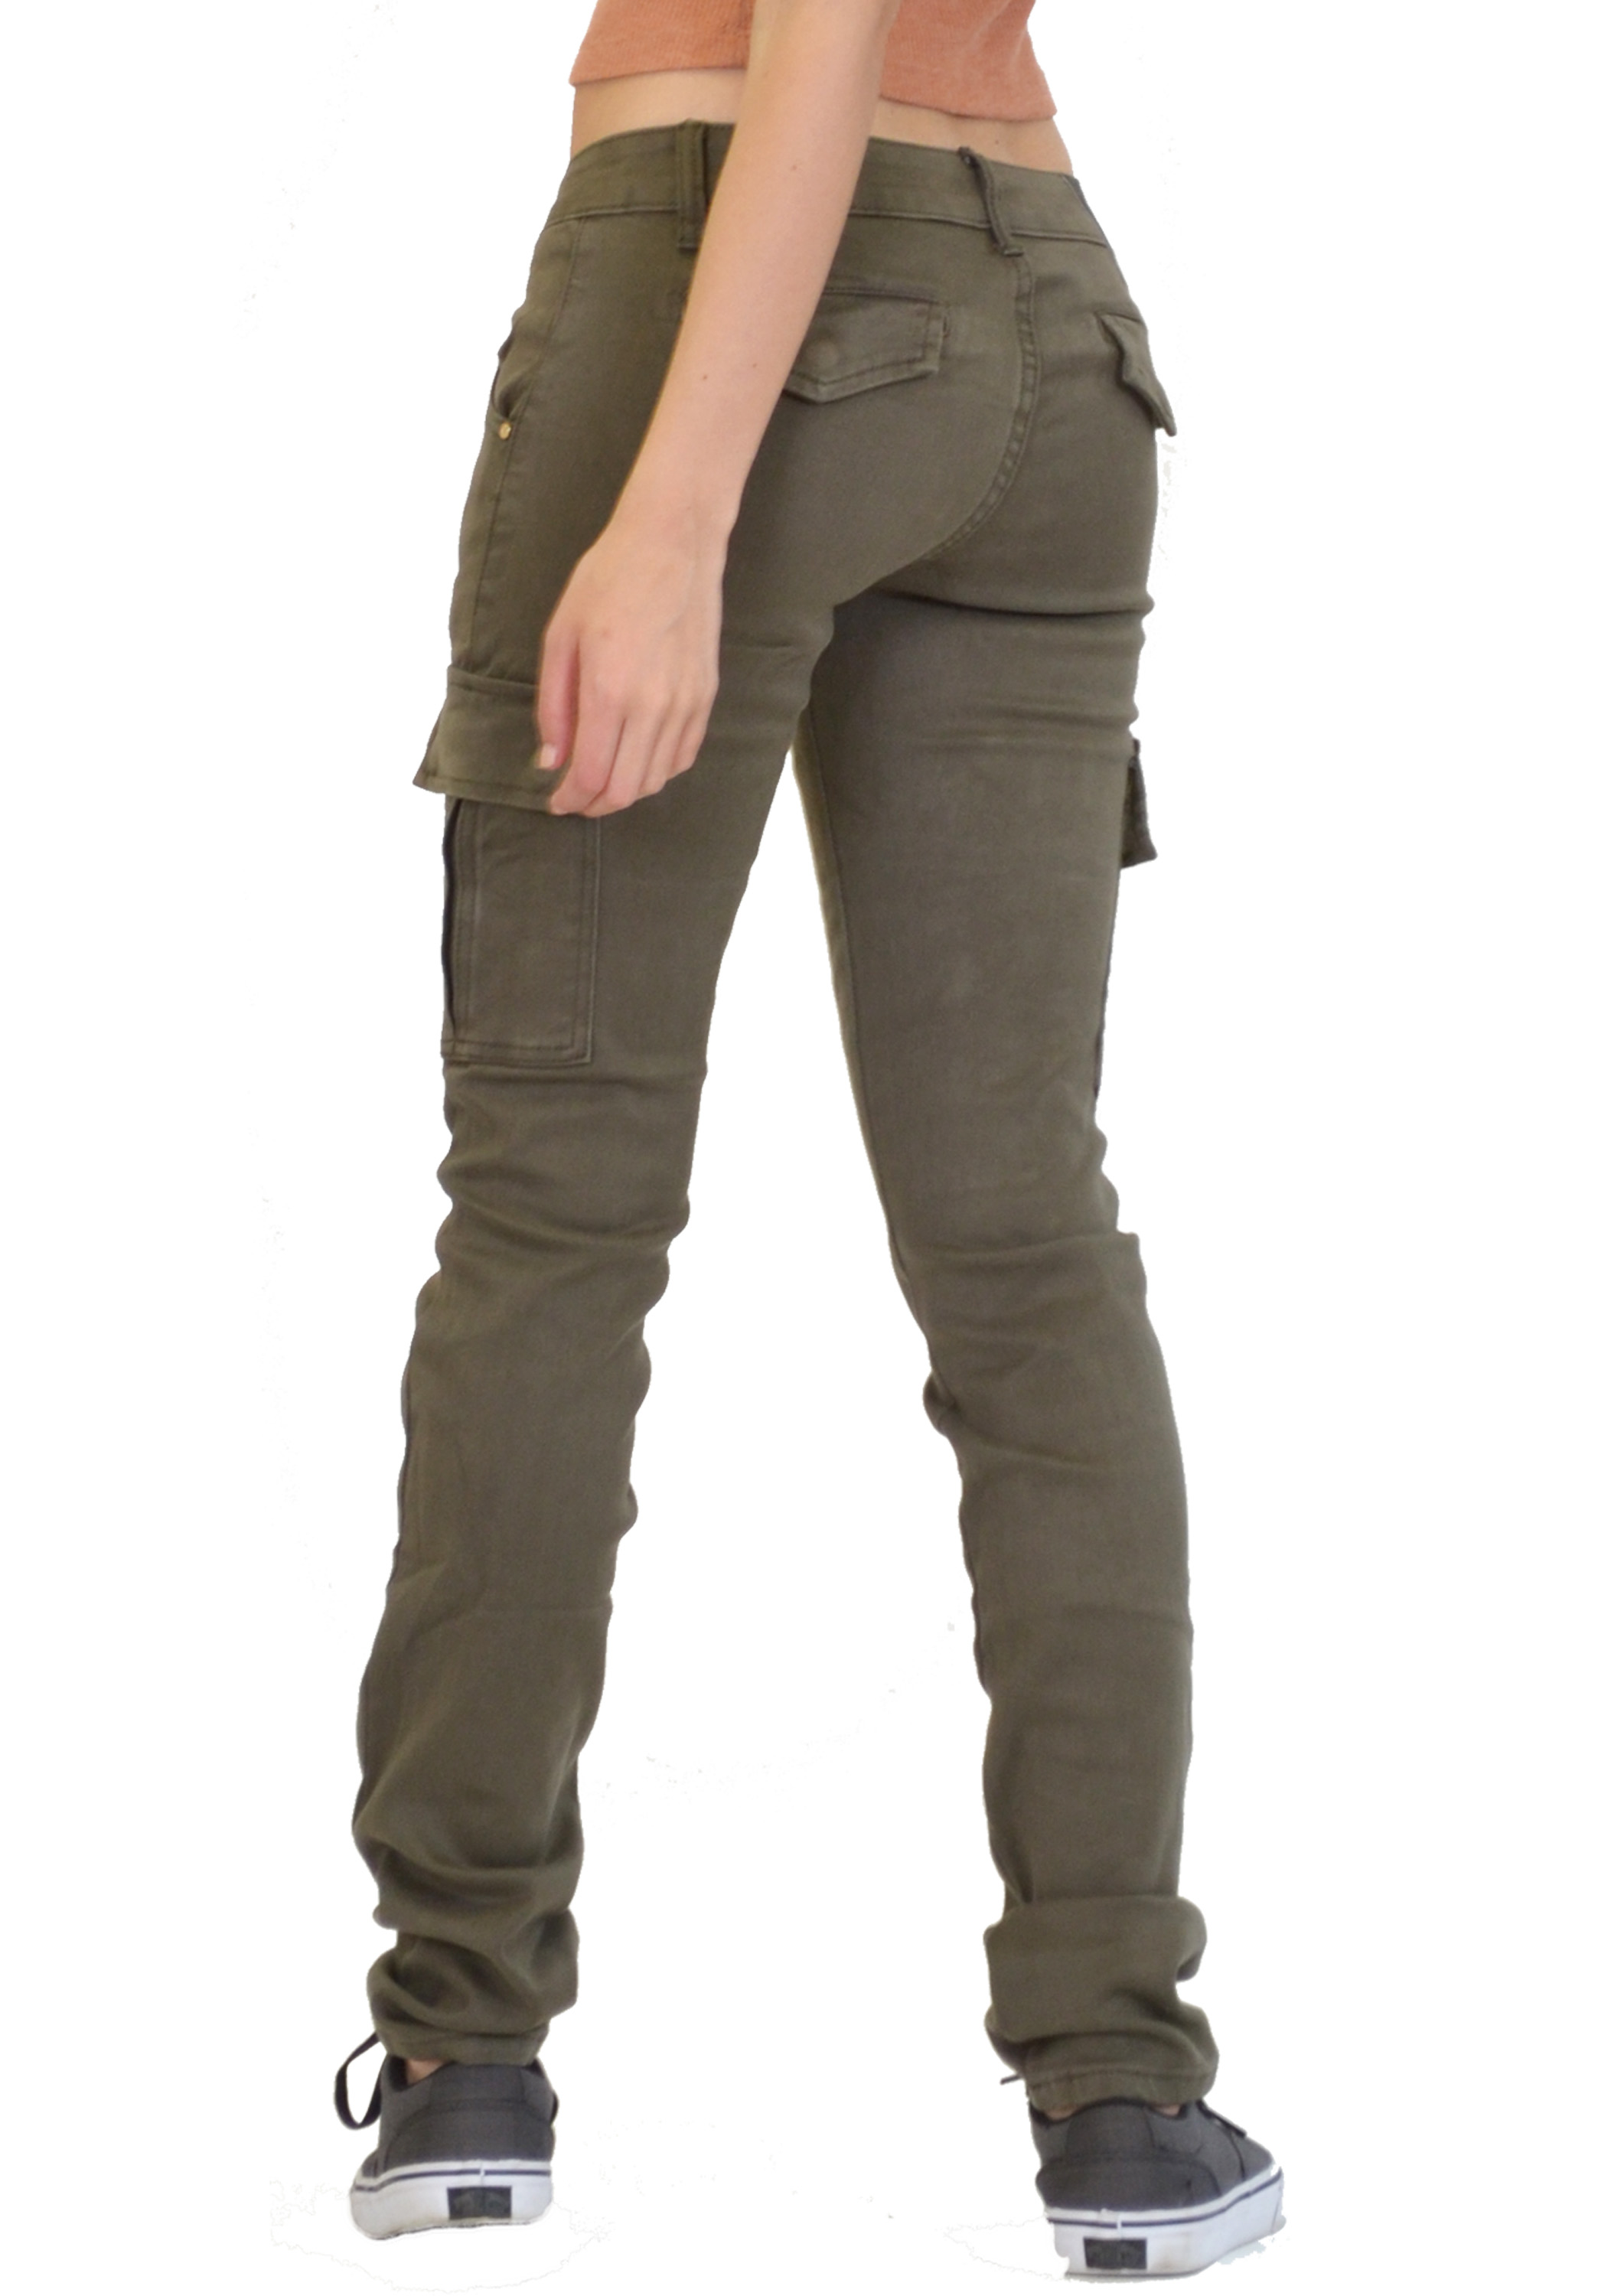 Super discount sale uk superior materials Details about New Womens Ladies Slim Fitted Stretch Combat Jeans Pants  Skinny Cargo Trousers